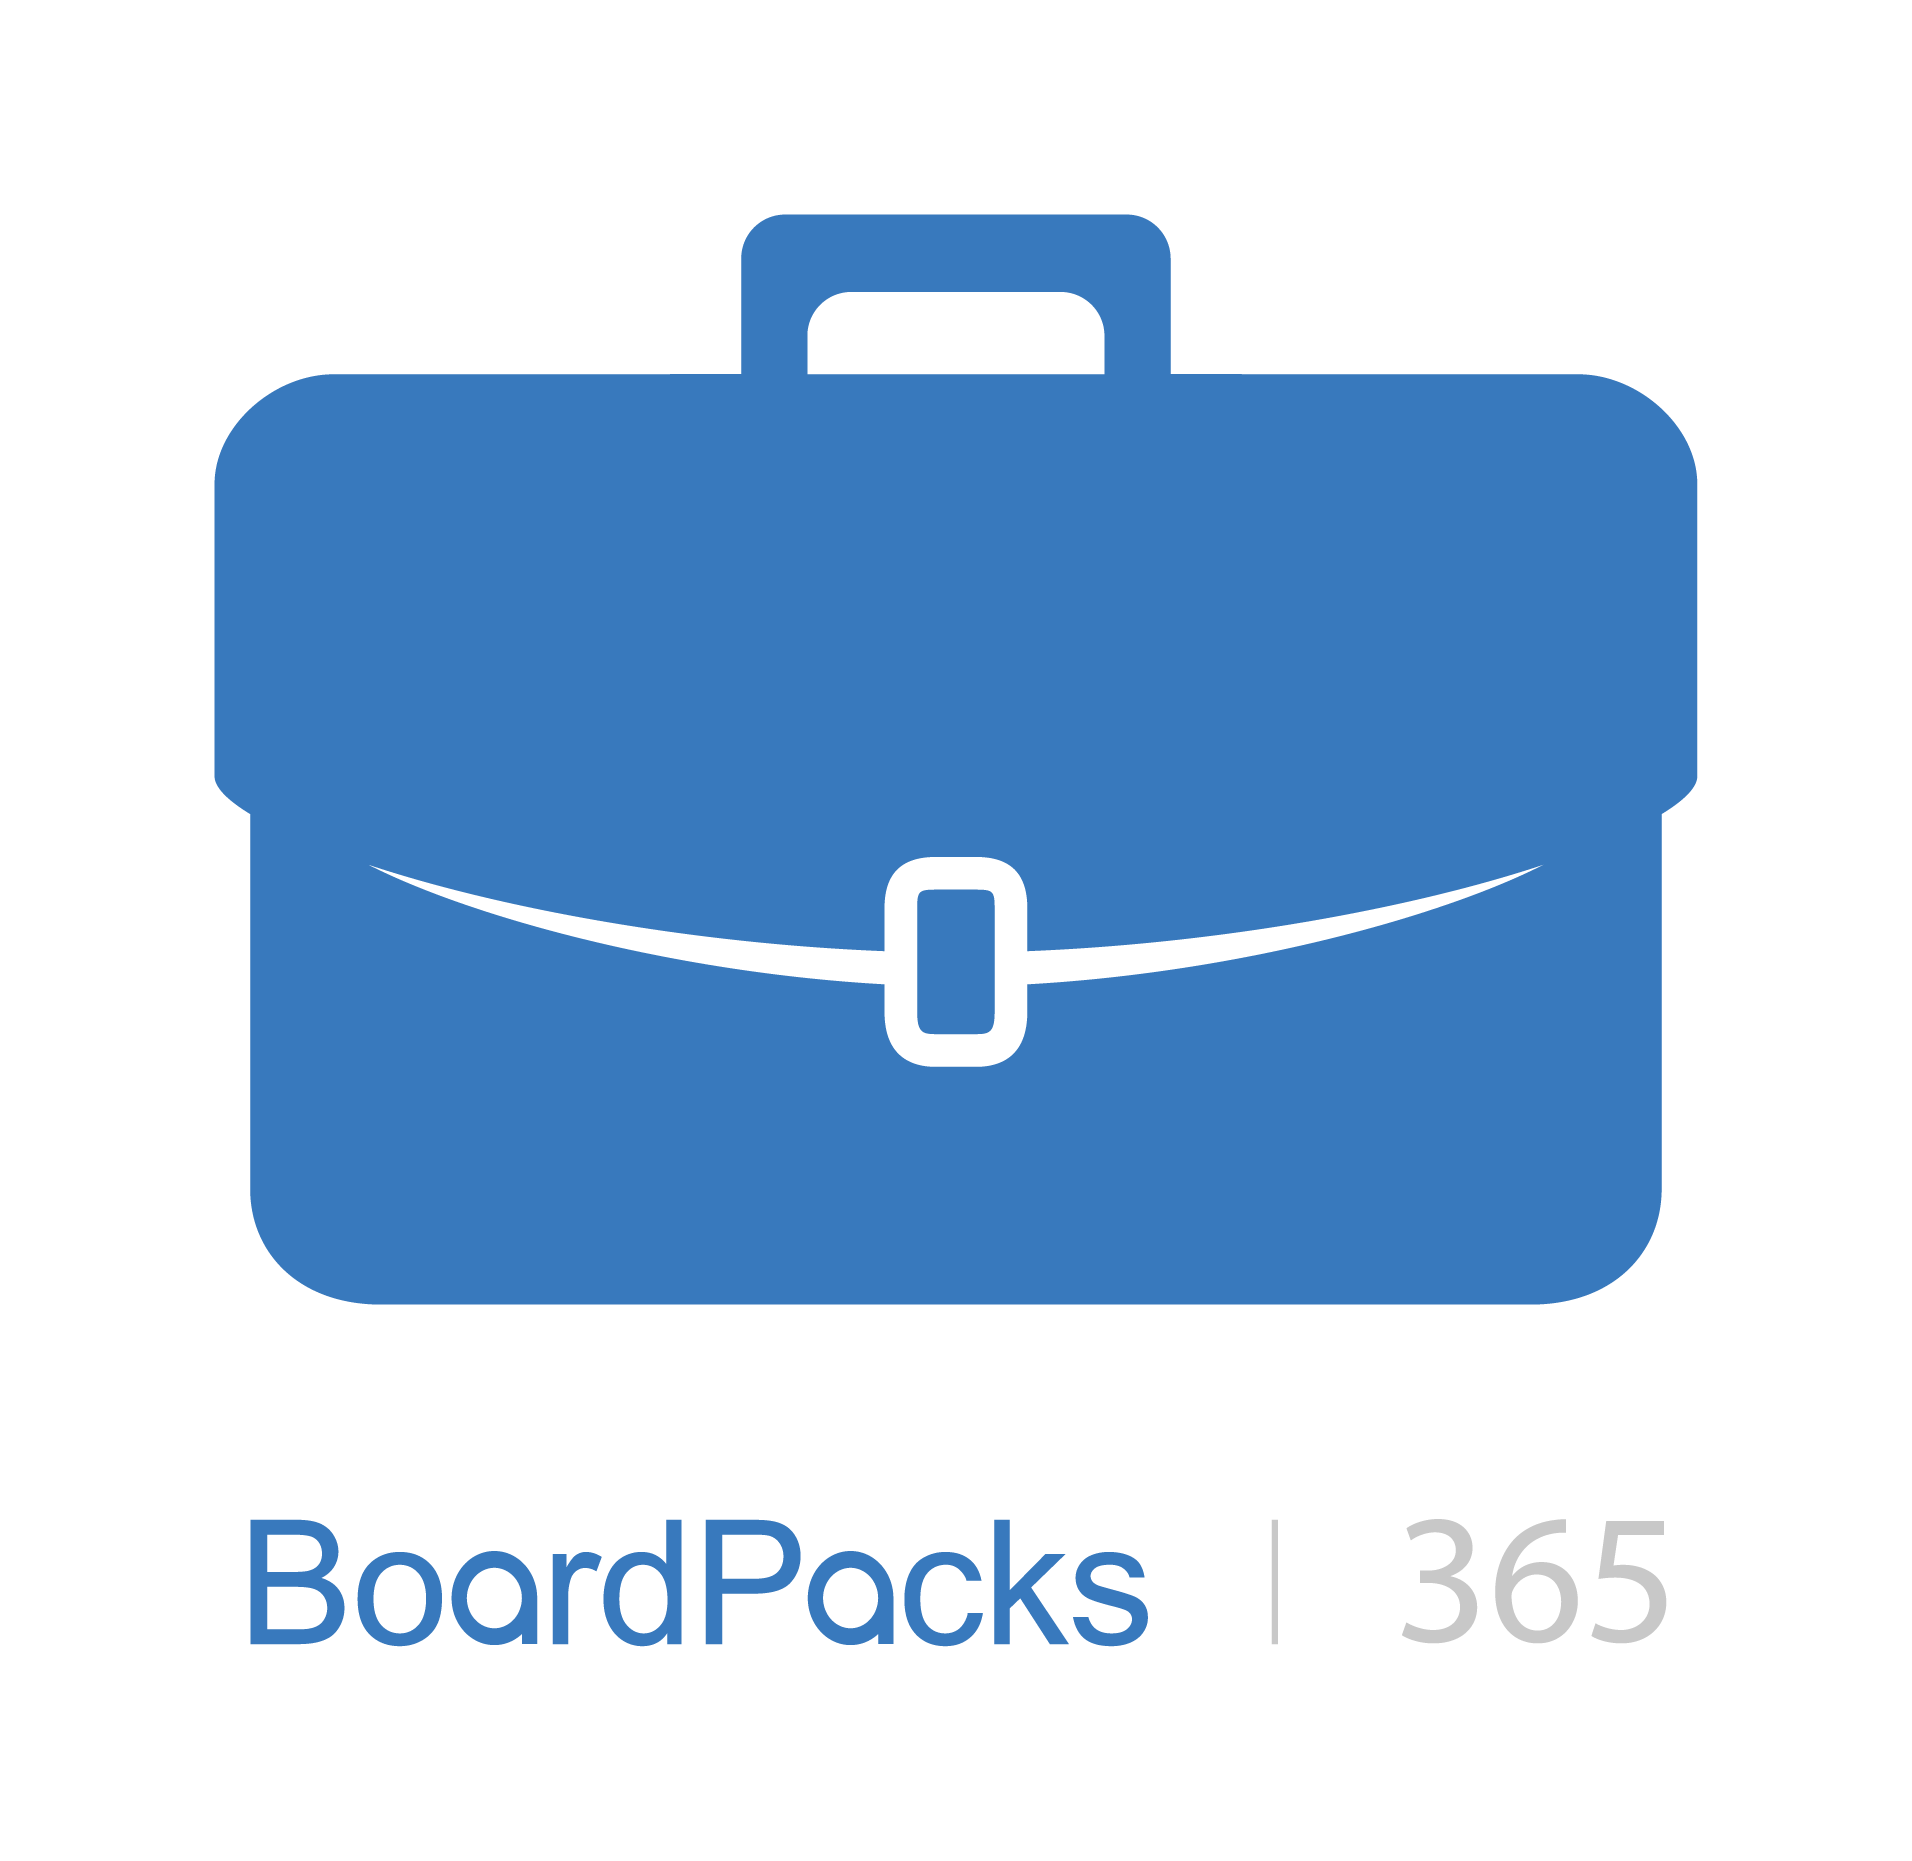 BoardPacks in Office 365